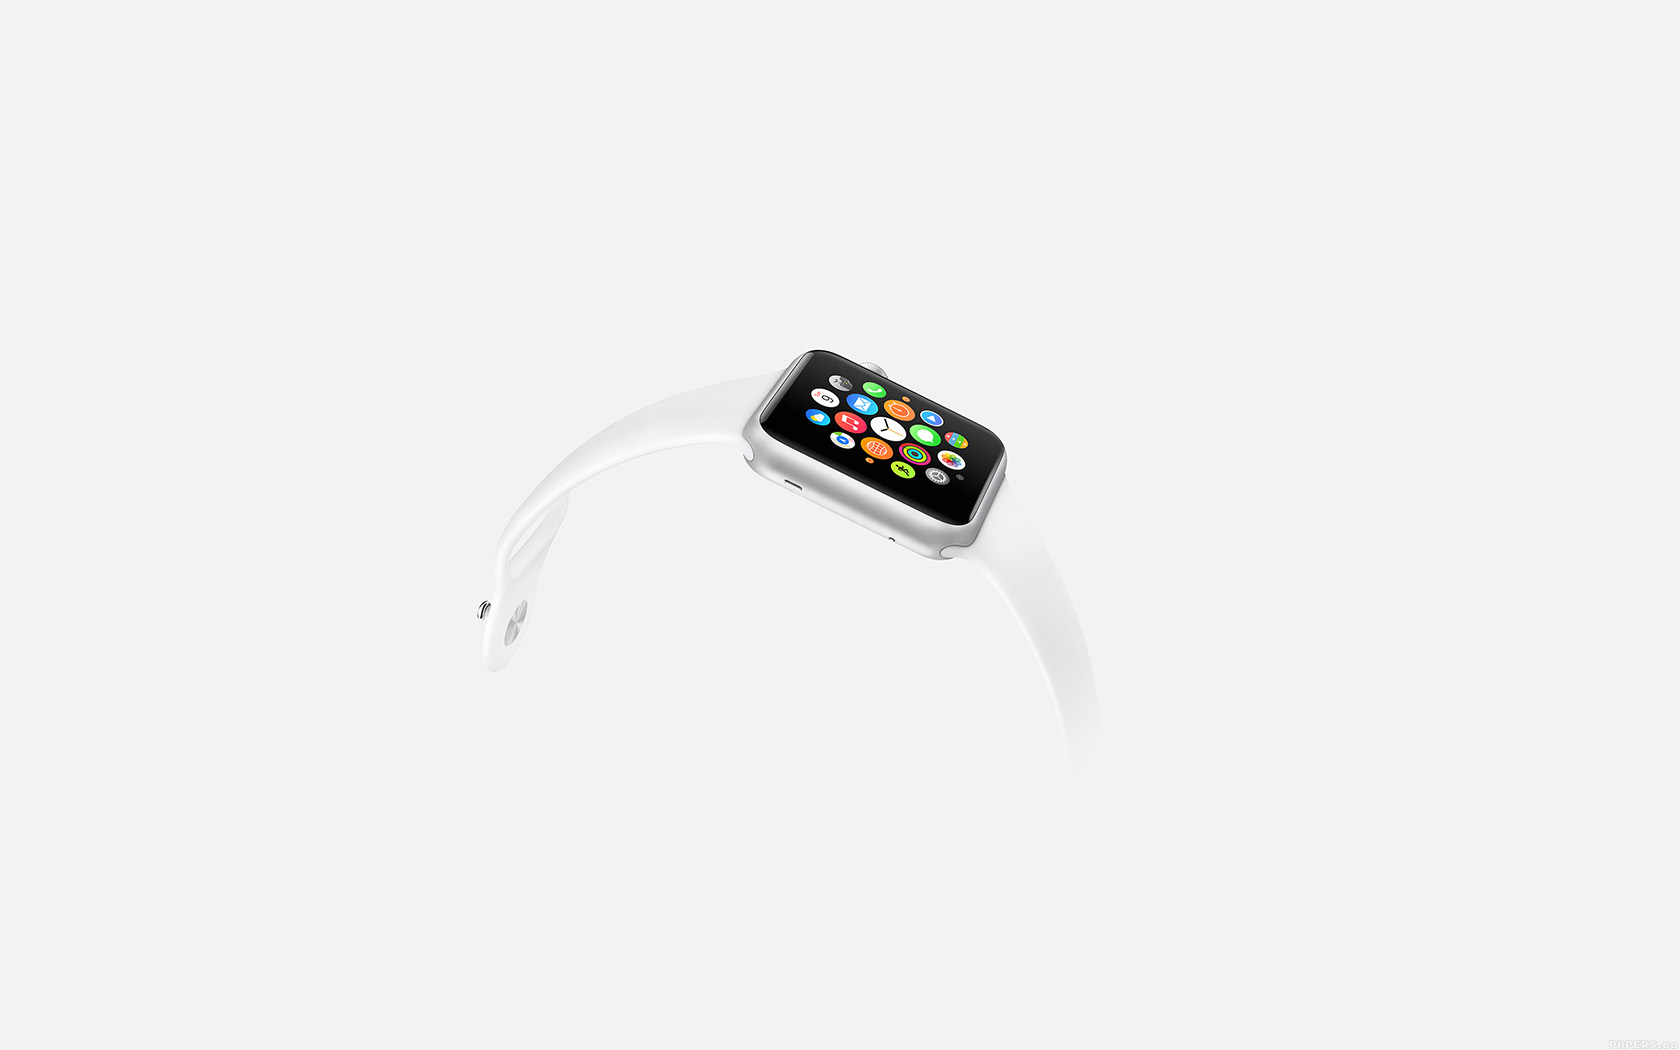 essay on apple watch Apple newsroom is the source for news about apple read press releases, get updates, watch video and download images.